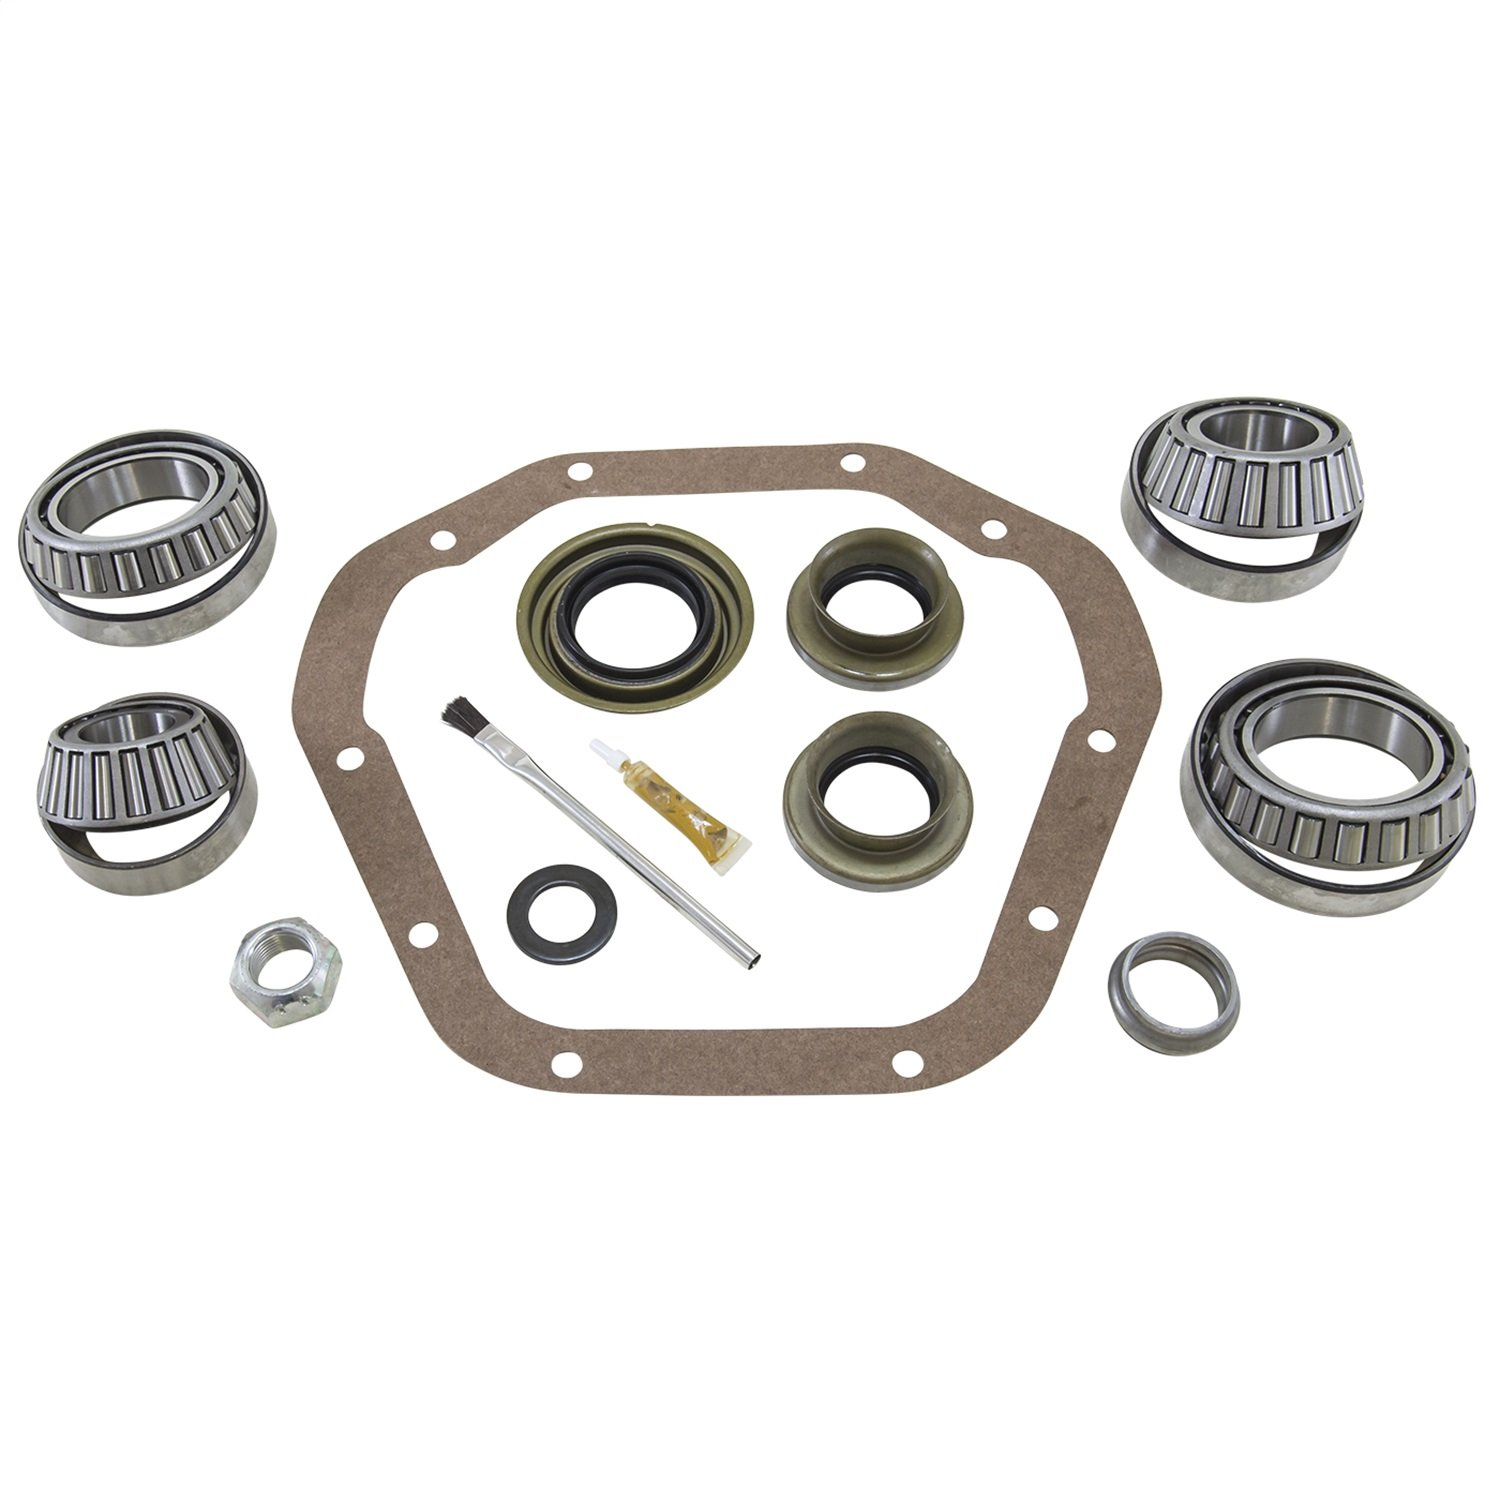 USA Standard Gear (ZBKD60-R) Bearing Kit for Dana 60 Rear Differential by USA Standard Gear (Image #1)